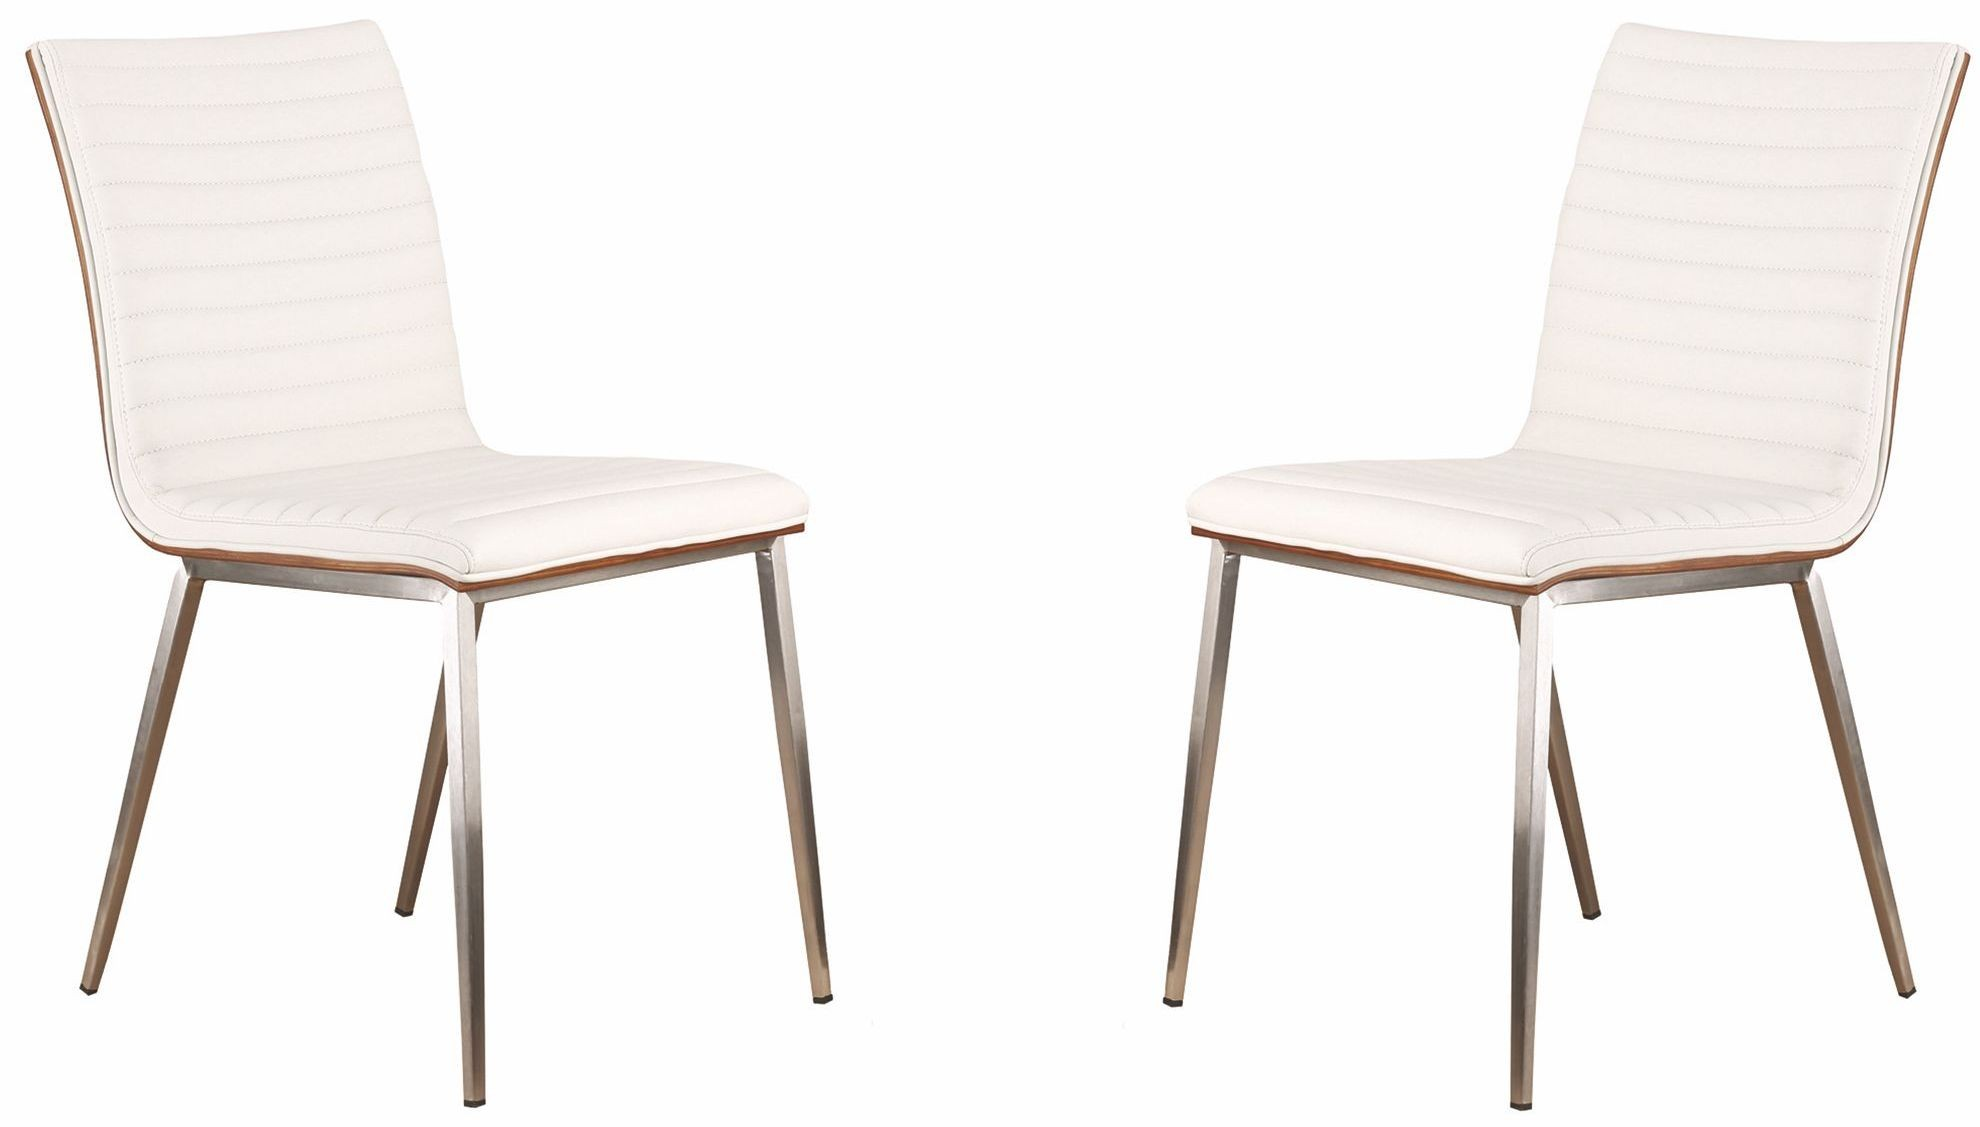 steel net chair office chairs near me cafe brushed stainless white dining set of 2